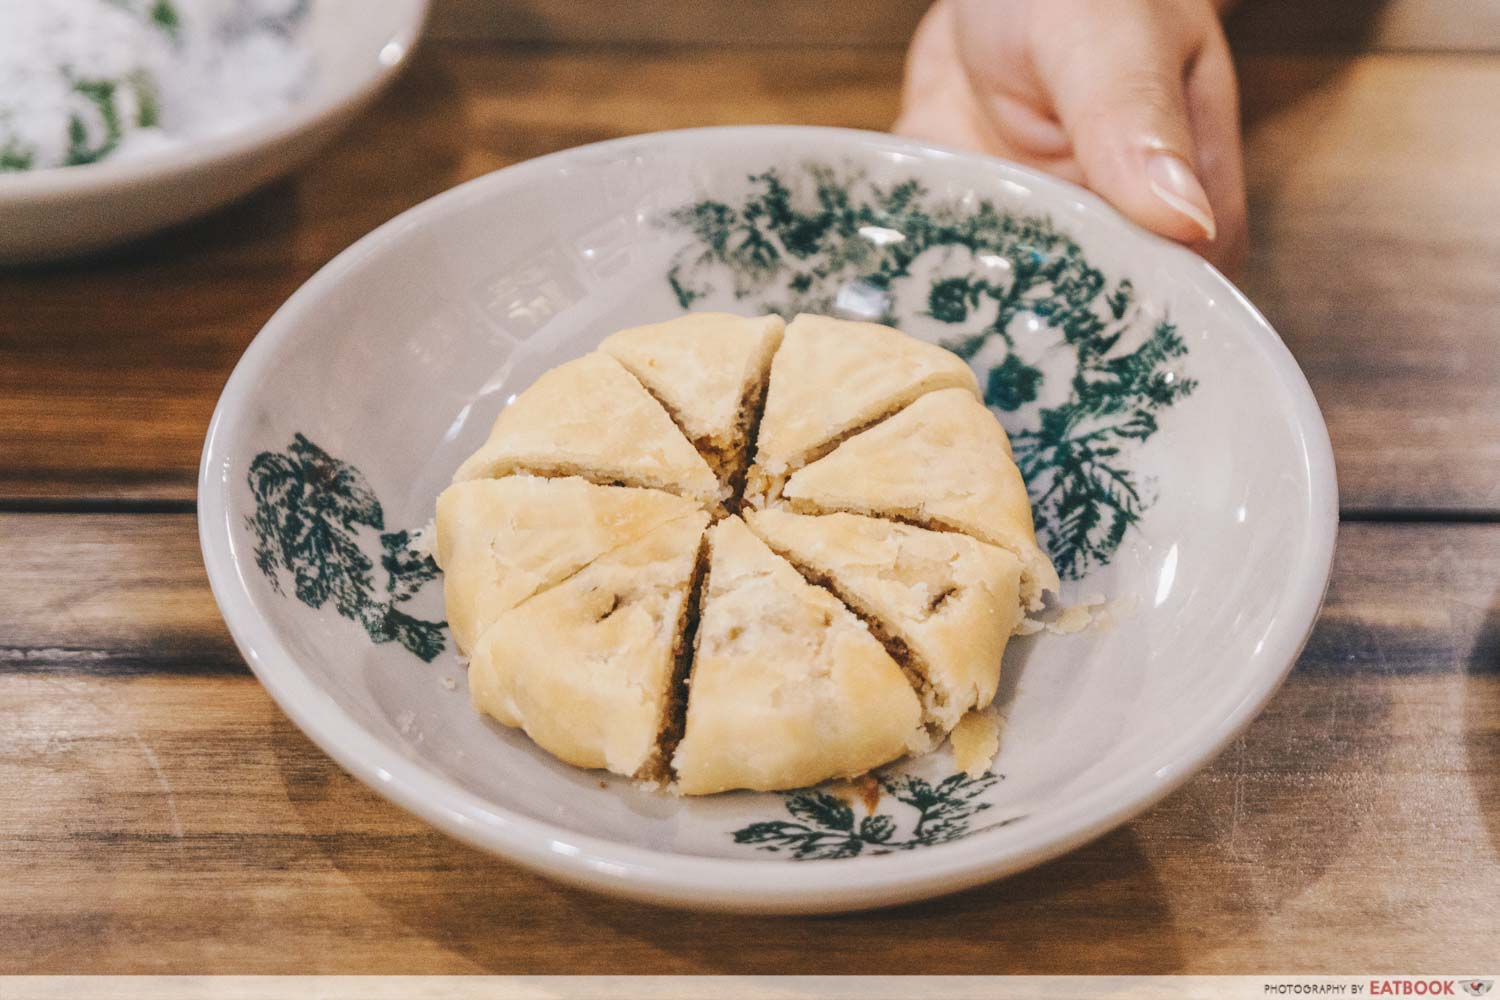 Chuan Ji Bakery Hainanese Delicacies - Hainanese Flaky Biscuit